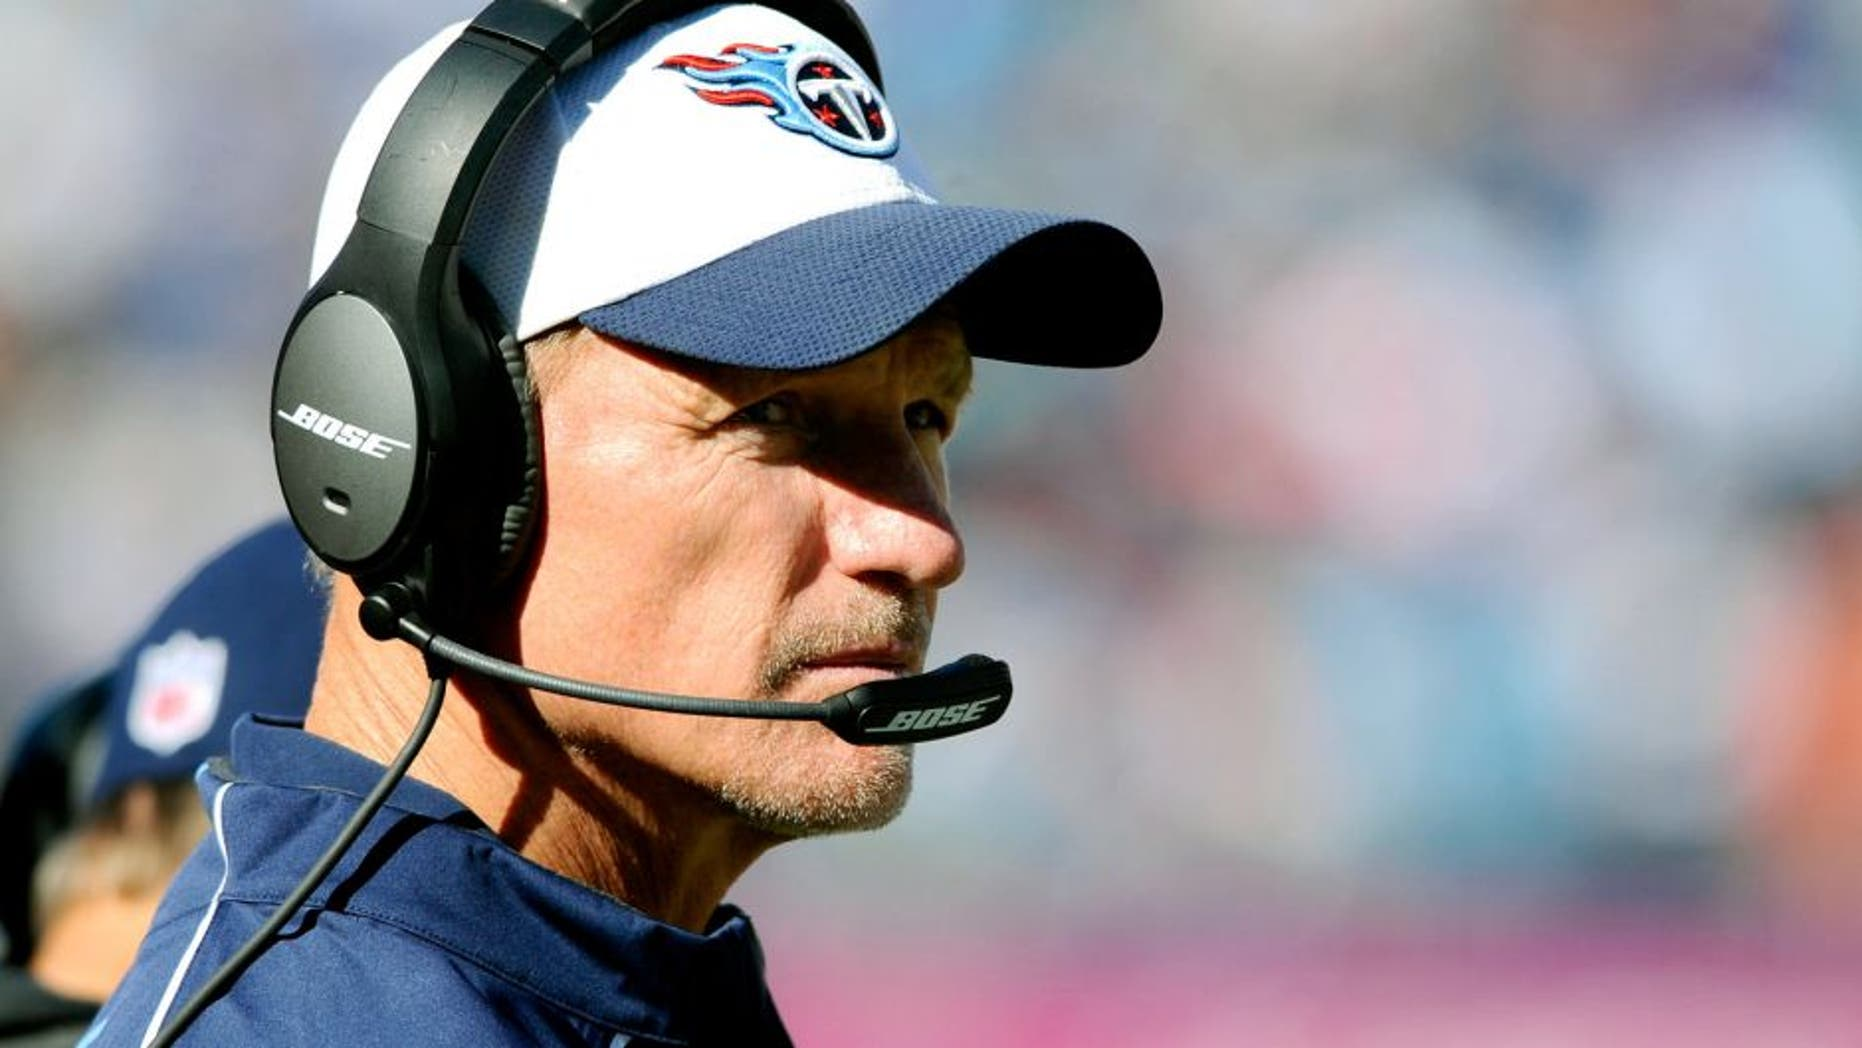 Oct 18, 2015; Nashville, TN, USA; Tennessee Titans head coach Ken Whisenhunt looks on from the sidelines during the second half against the Miami Dolphins at Nissan Stadium. The Dolphins won 38-10. Mandatory Credit: Christopher Hanewinckel-USA TODAY Sports